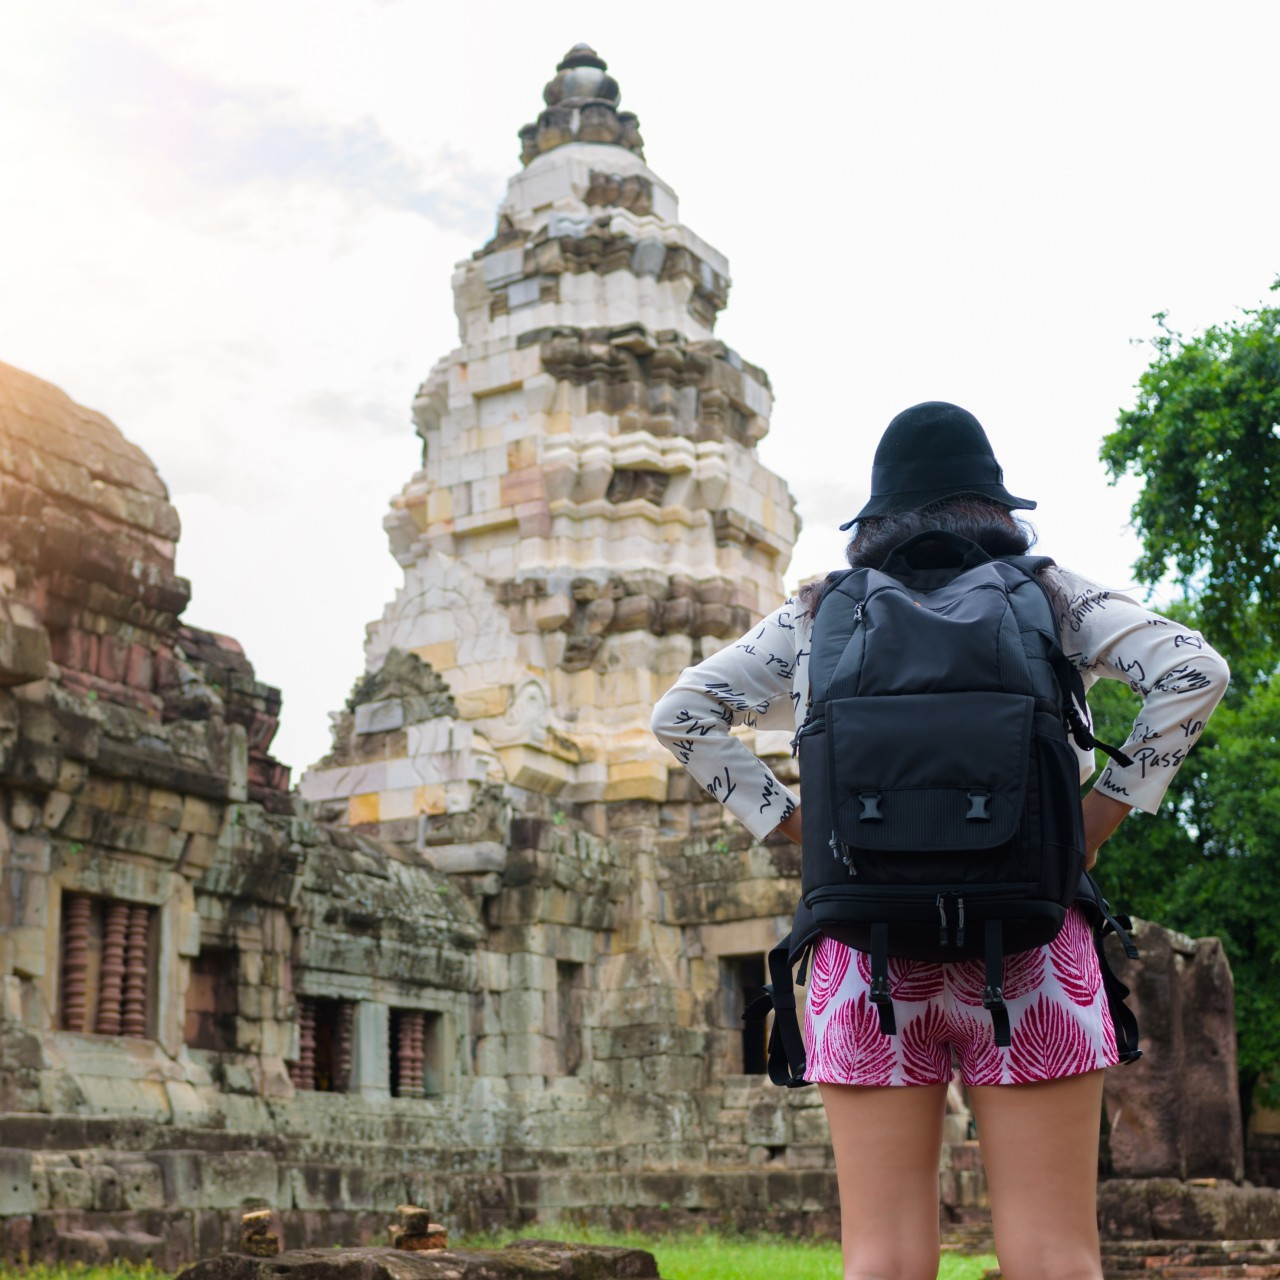 Solo female travel is on the rise, but is Asia safe for